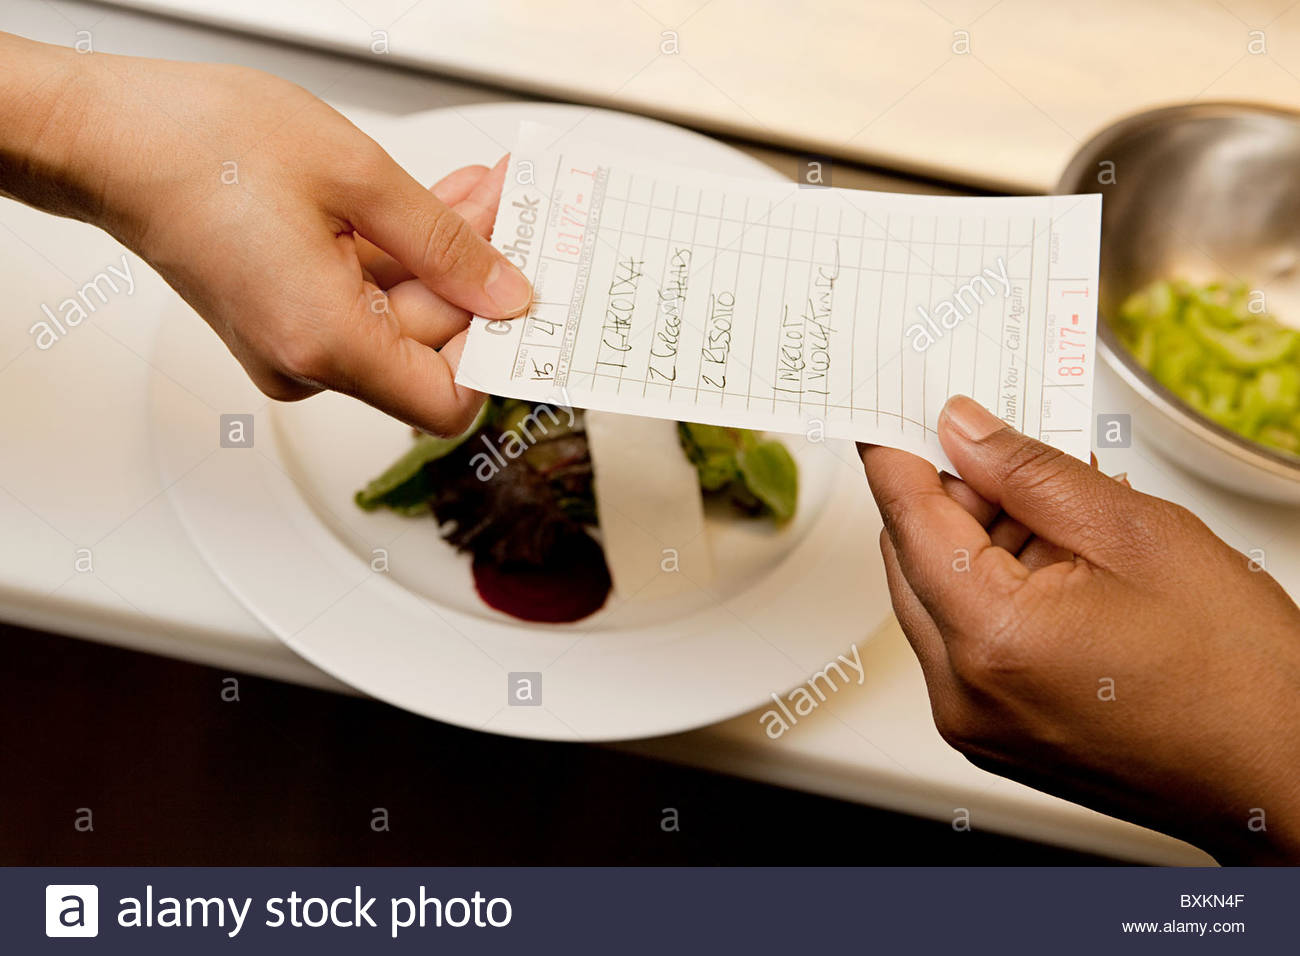 Food order being given to chef - Stock Image